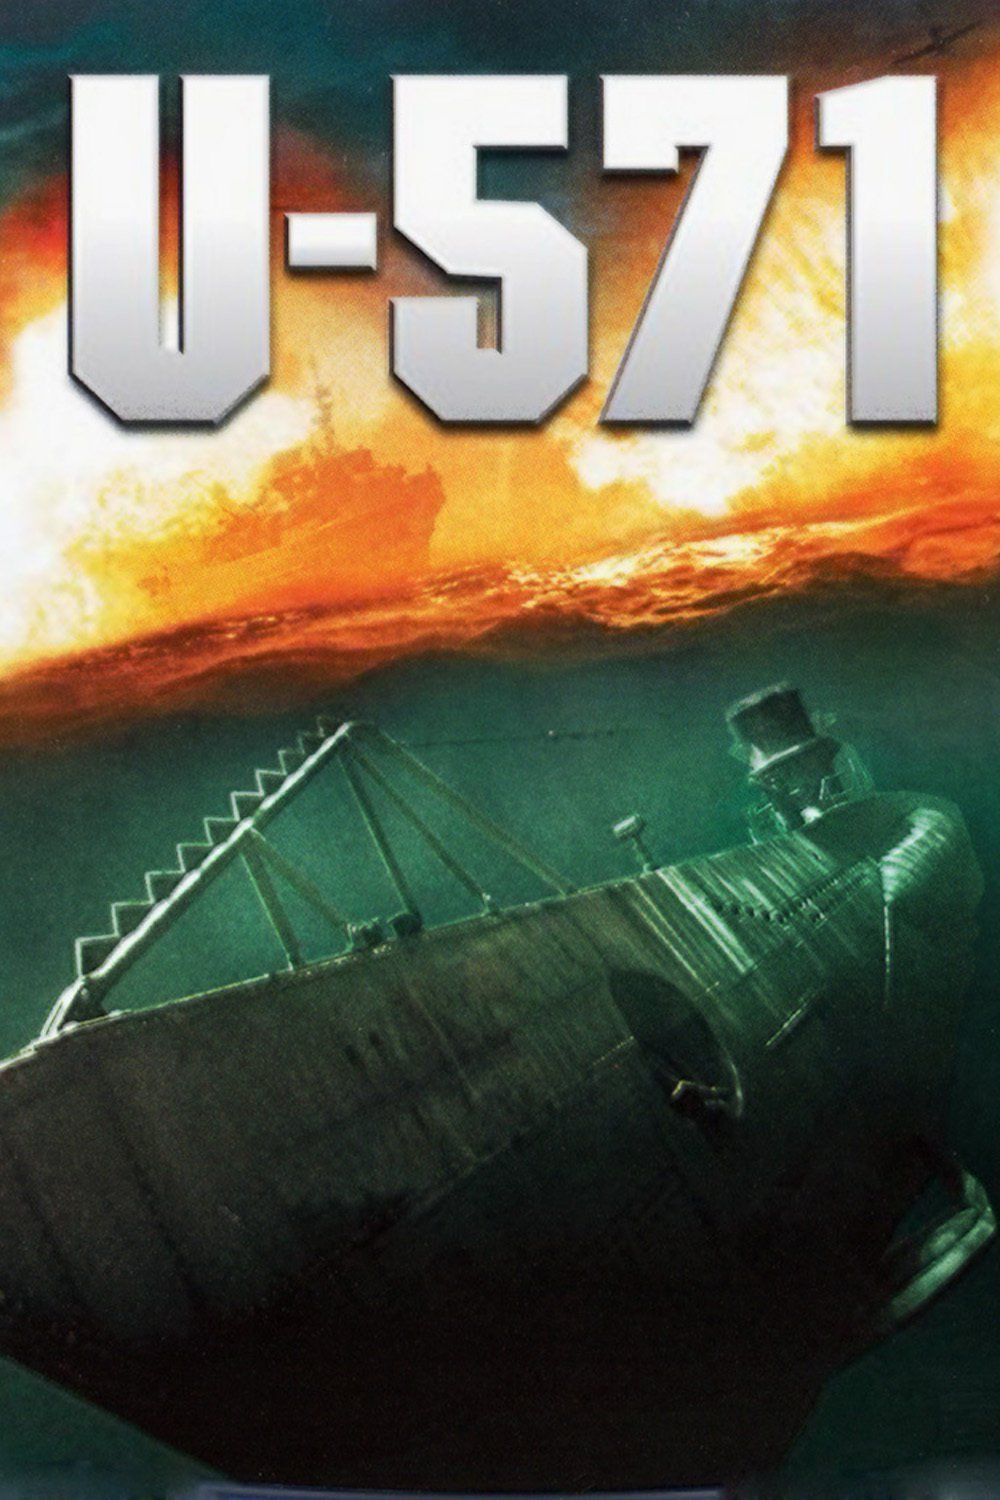 filme u-571 legendado